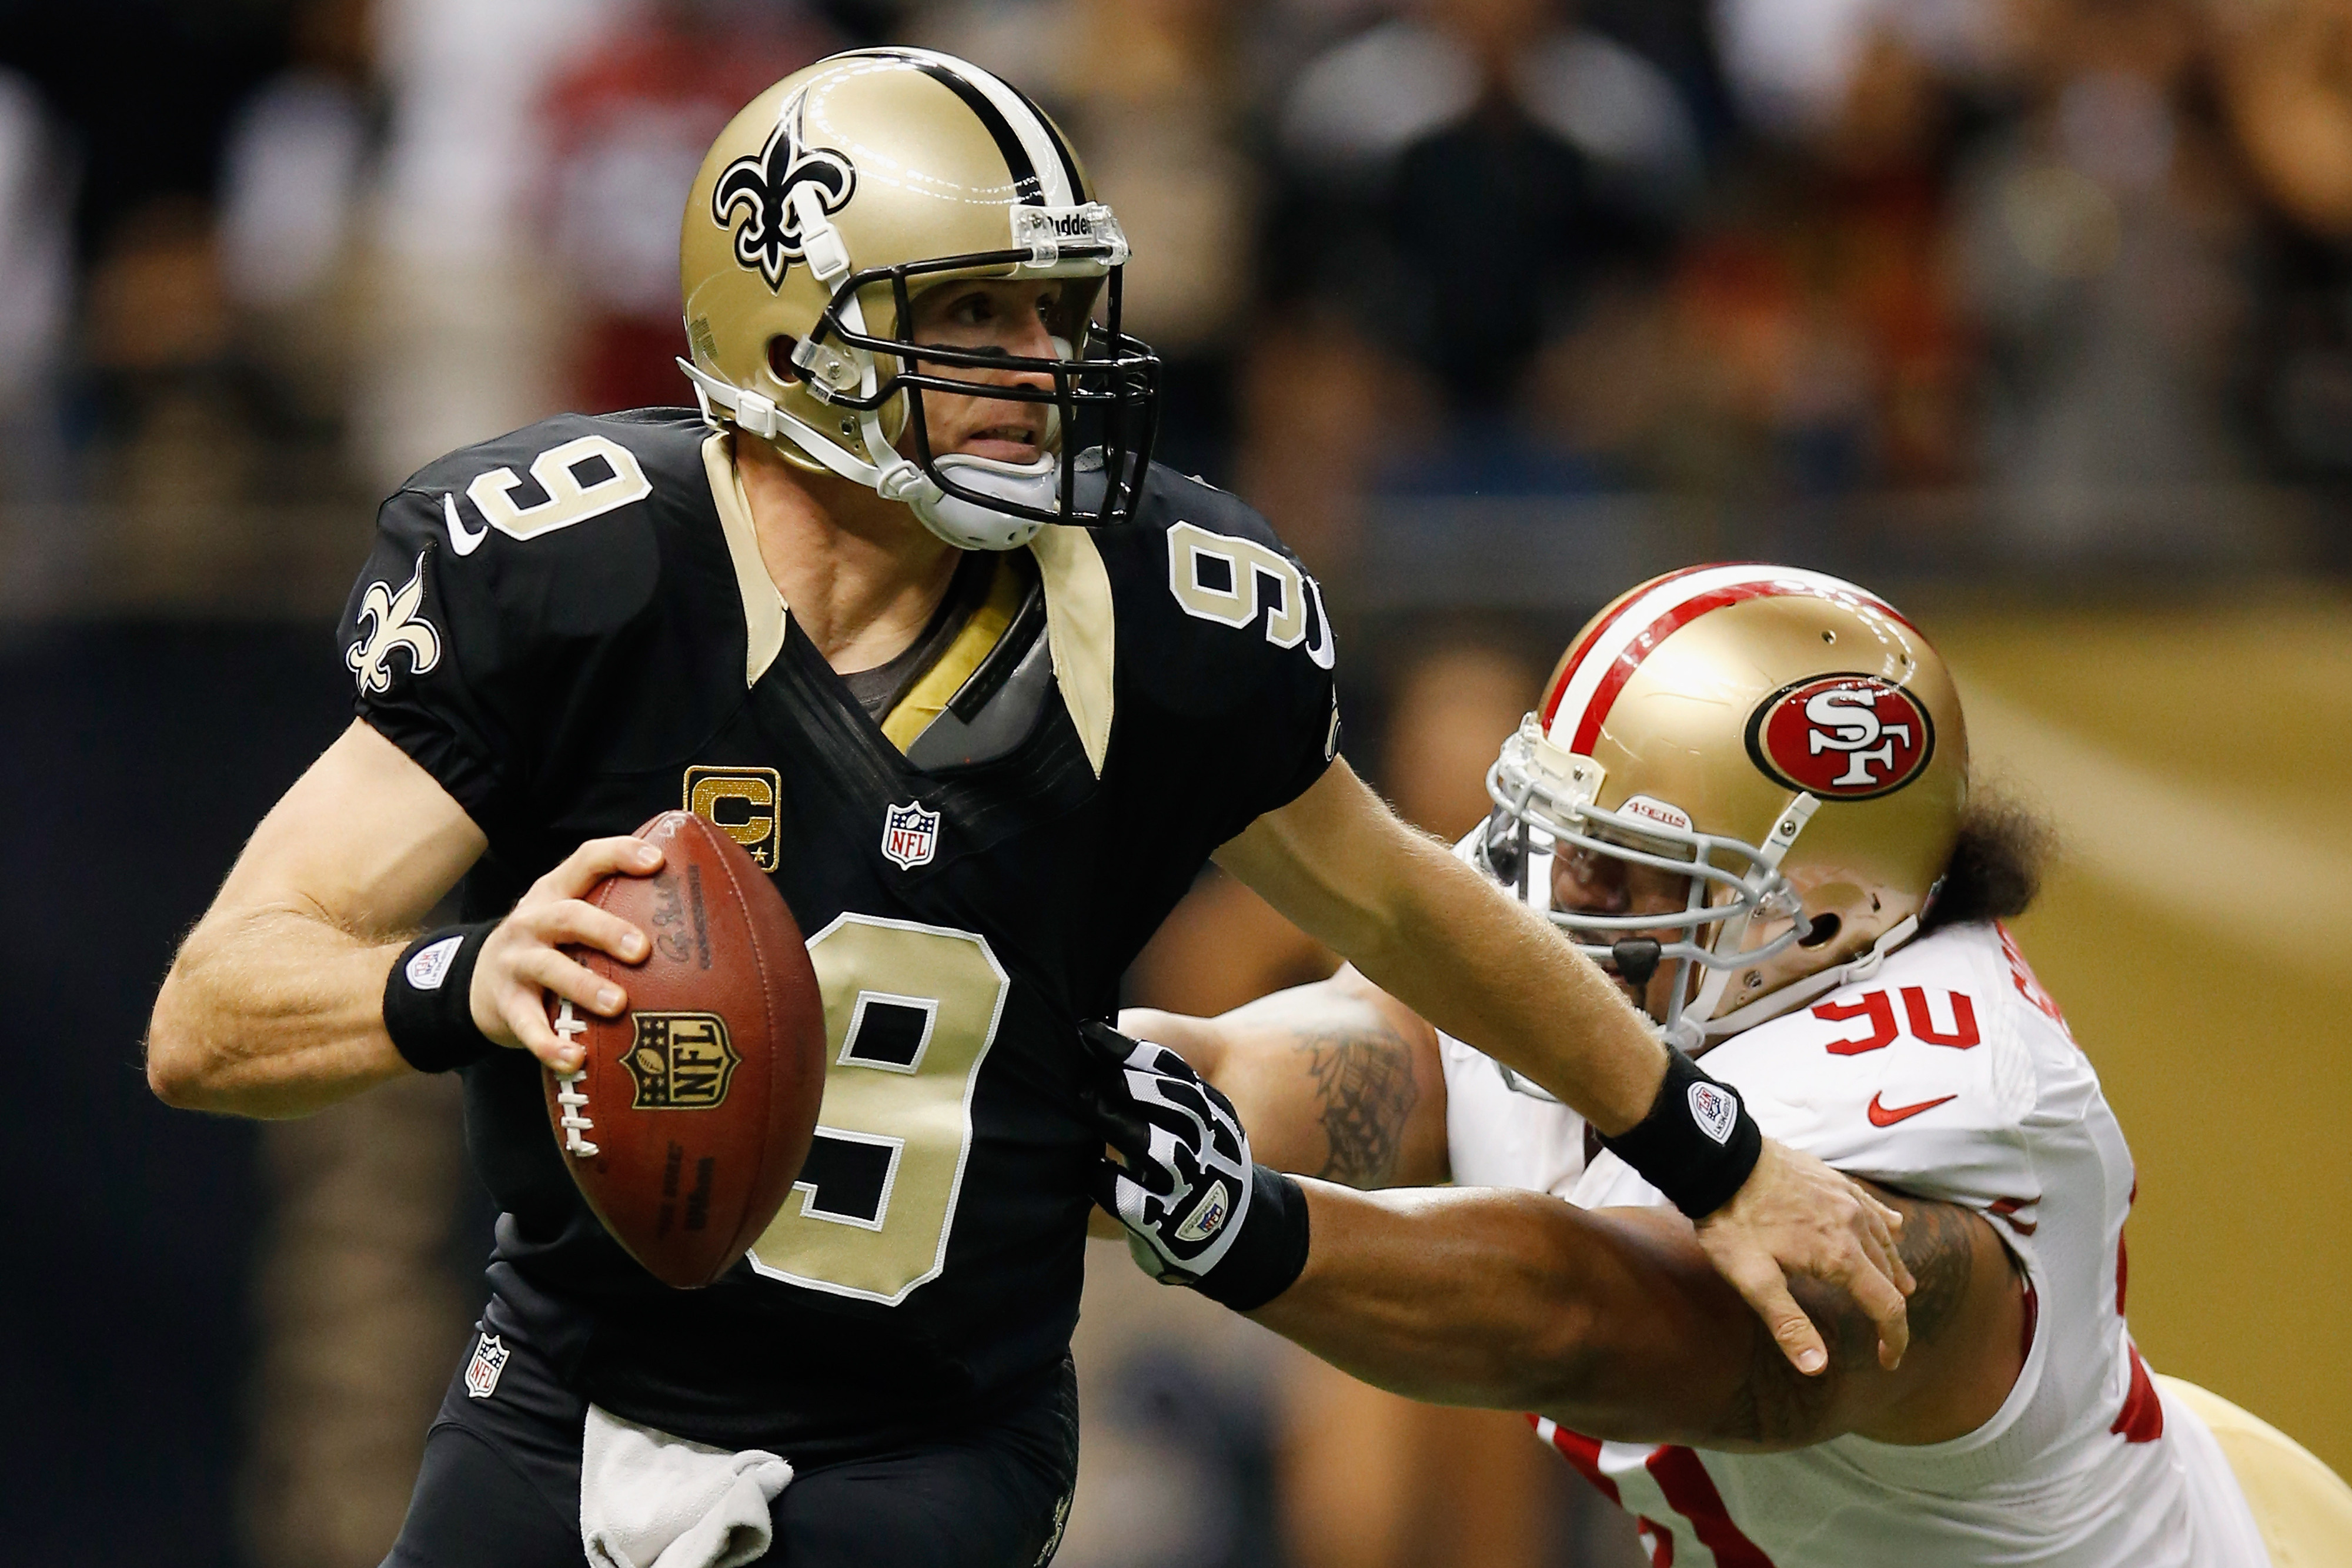 Drew Brees has done ok against the Niners rush.